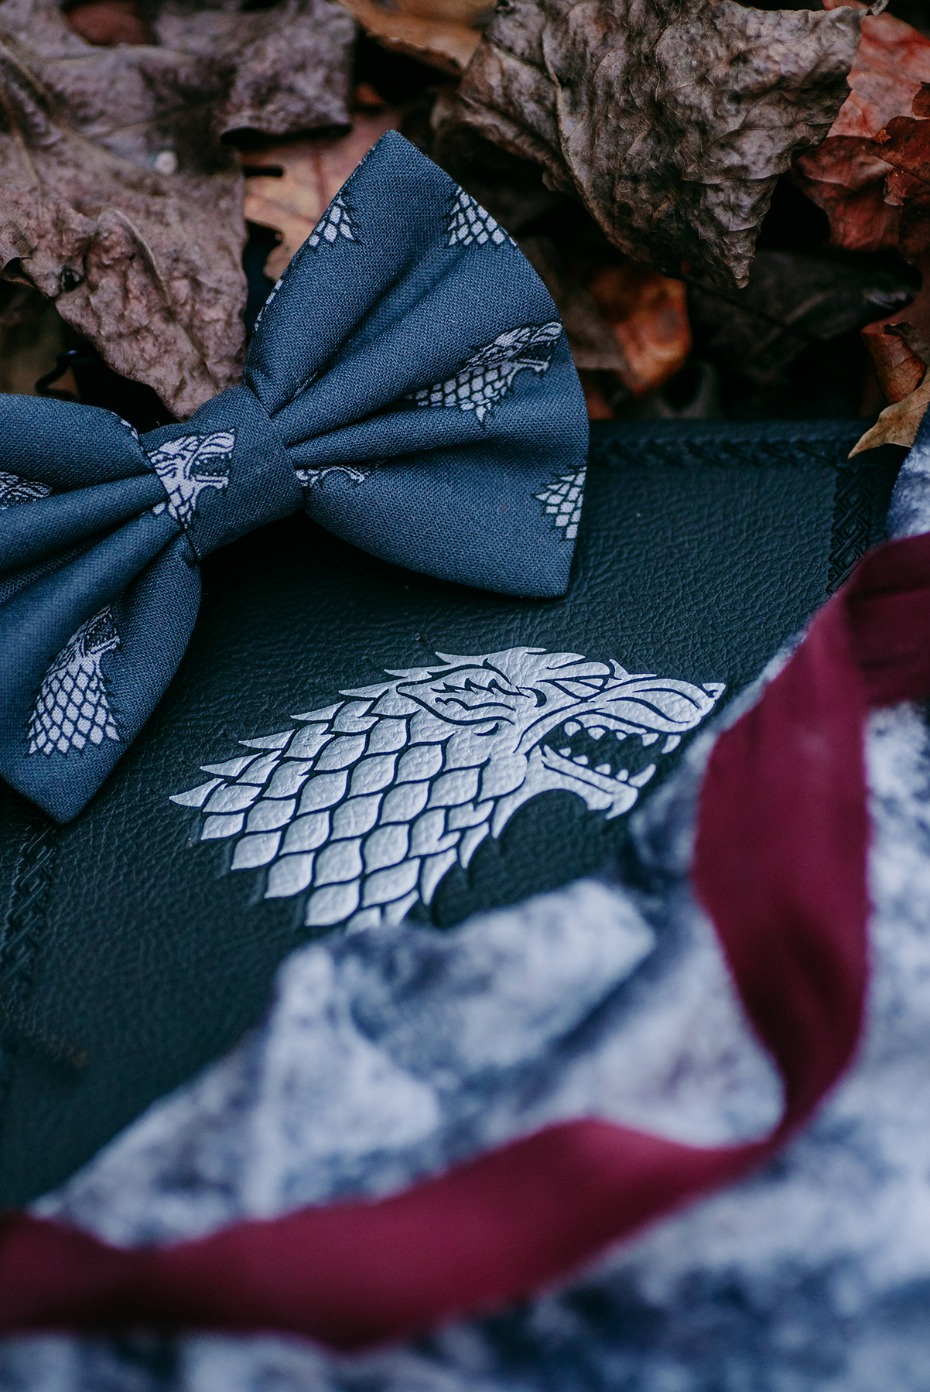 game of thrones house Stark wedding accessories